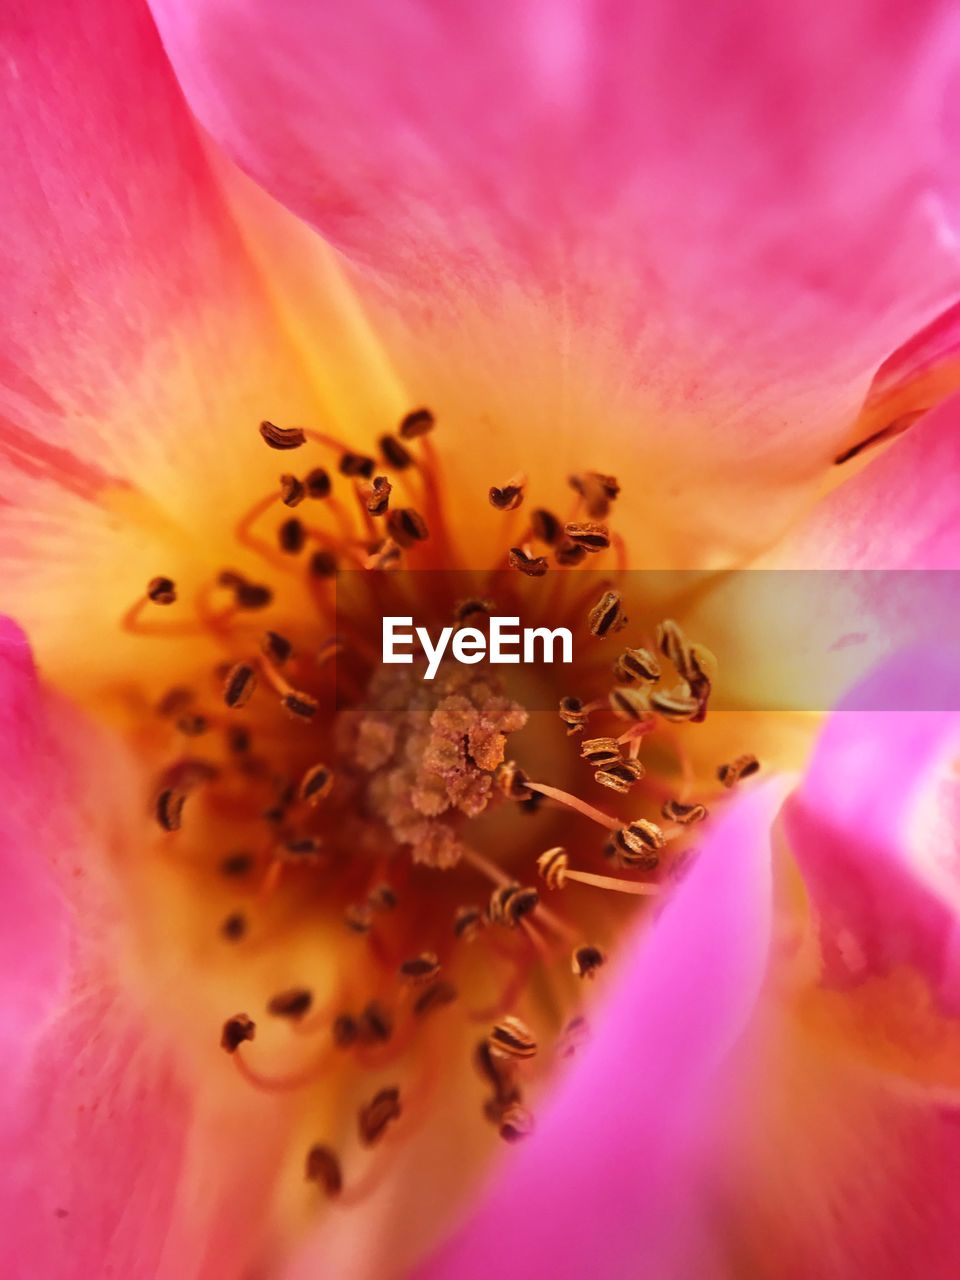 flowering plant, flower, petal, fragility, vulnerability, pollen, freshness, flower head, inflorescence, beauty in nature, plant, growth, close-up, stamen, full frame, extreme close-up, macro, backgrounds, pink color, no people, outdoors, purple, springtime, soft focus, spring